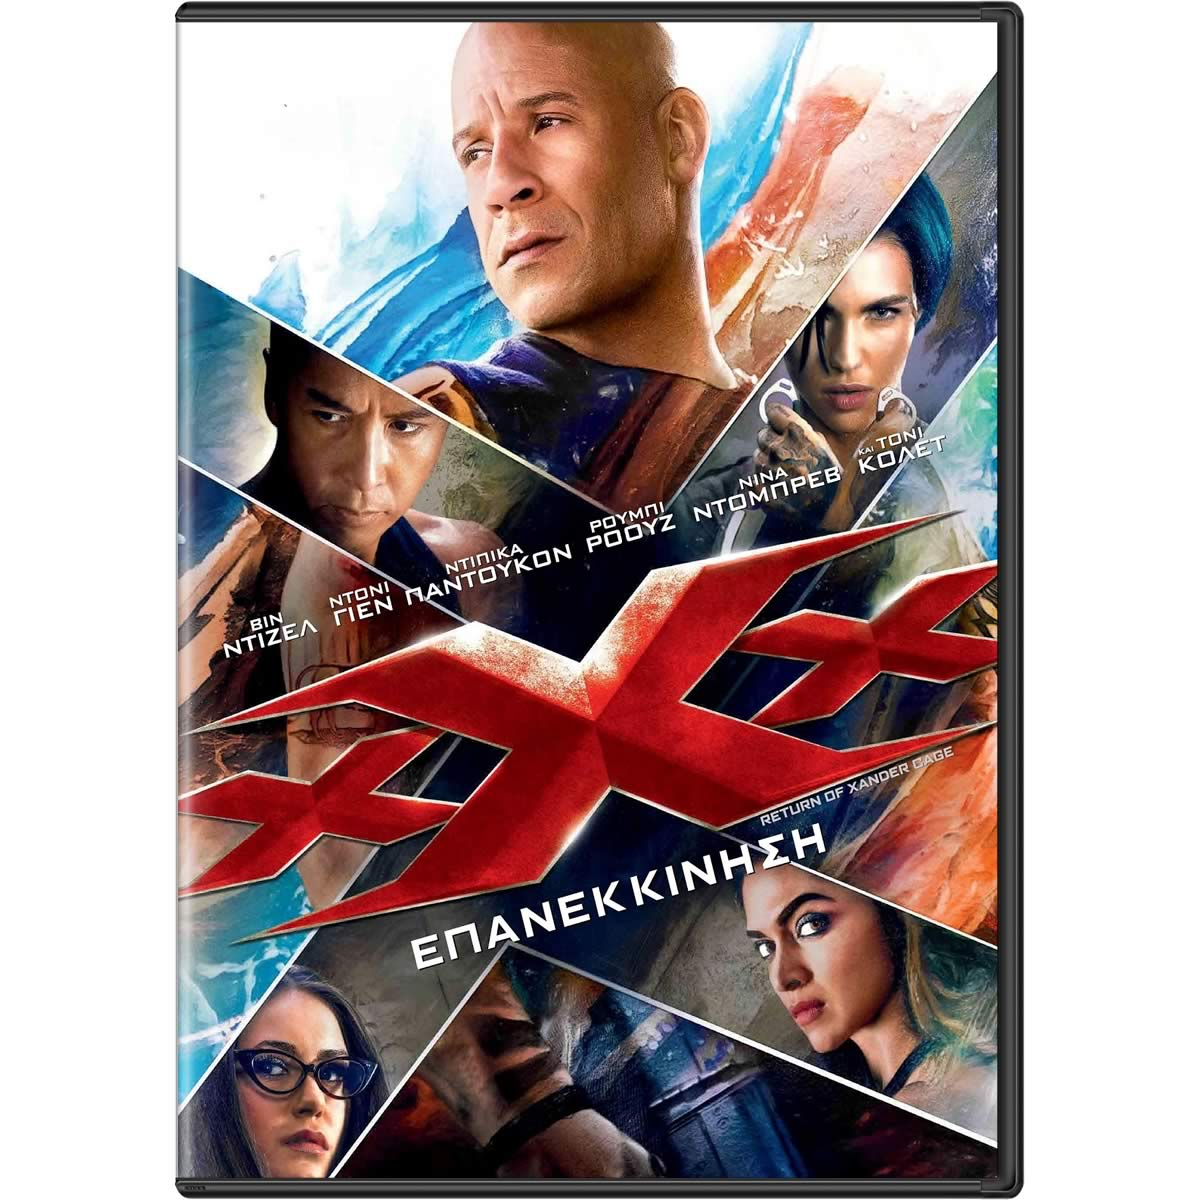 XXX: RETURN OF XANDER CAGE - XXX: ΕΠΑΝΕΚΚΙΝΗΣΗ (DVD)